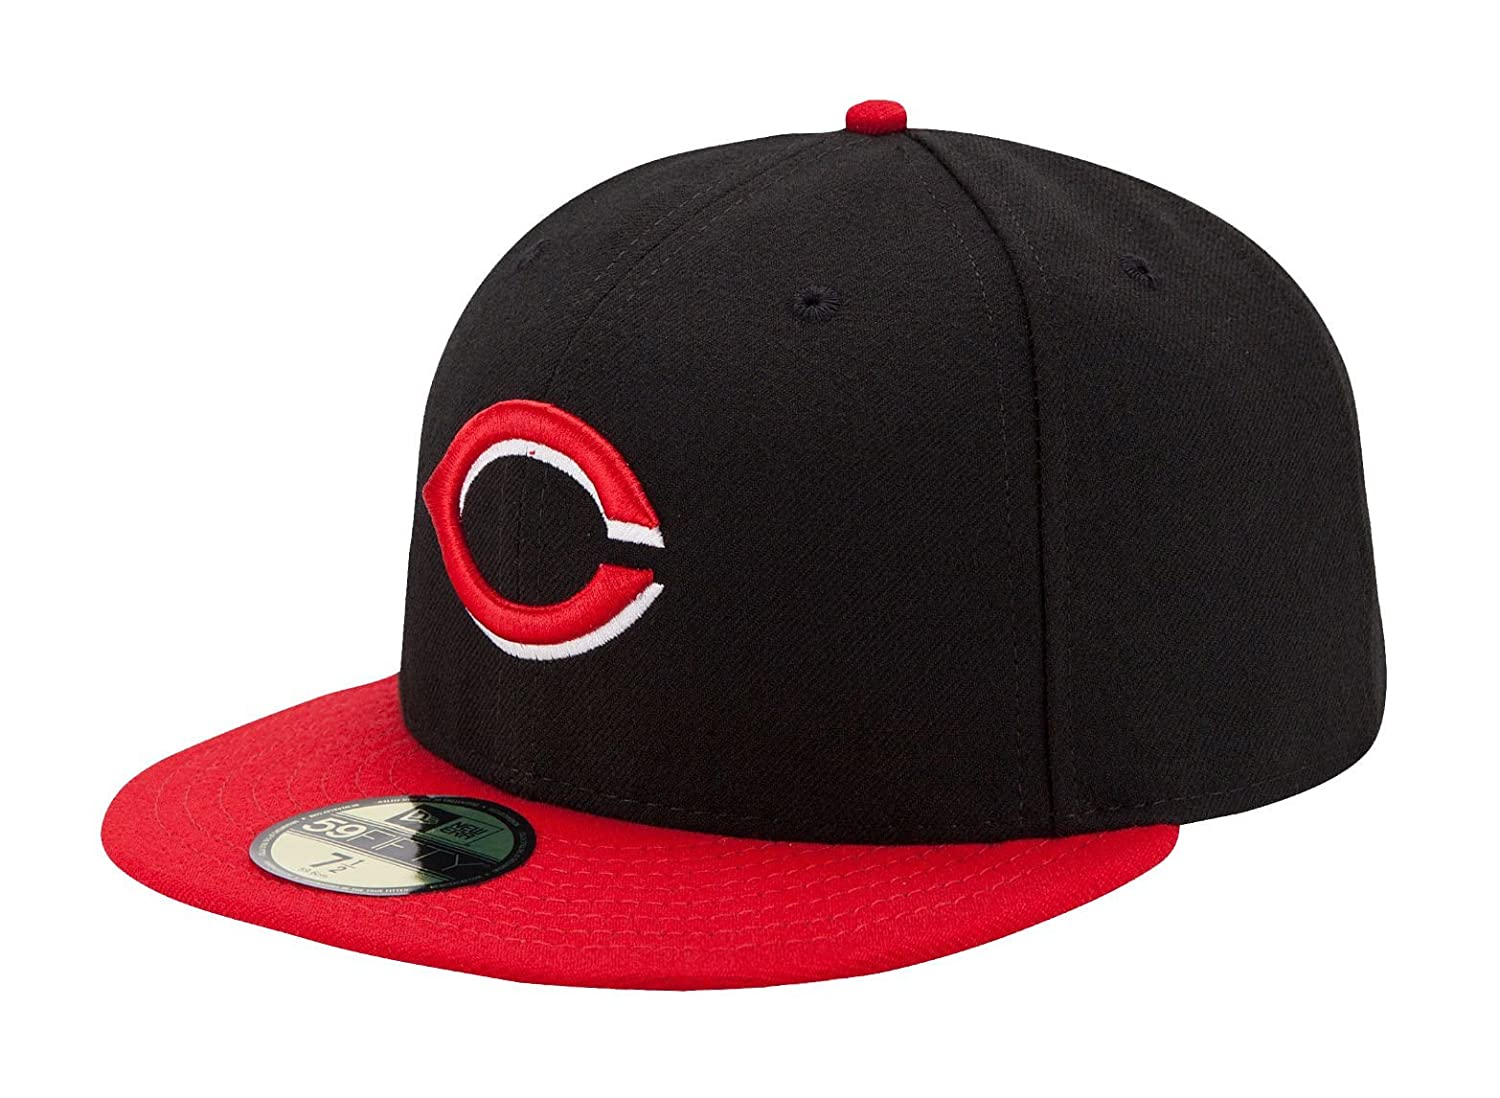 brand new 25c2b 1641e Amazon.com   New Era Cincinnati Reds Black with Red Brim Alternate  Authentic 2012-2013 On-Field 59FIFTY Fitted Hat   Clothing